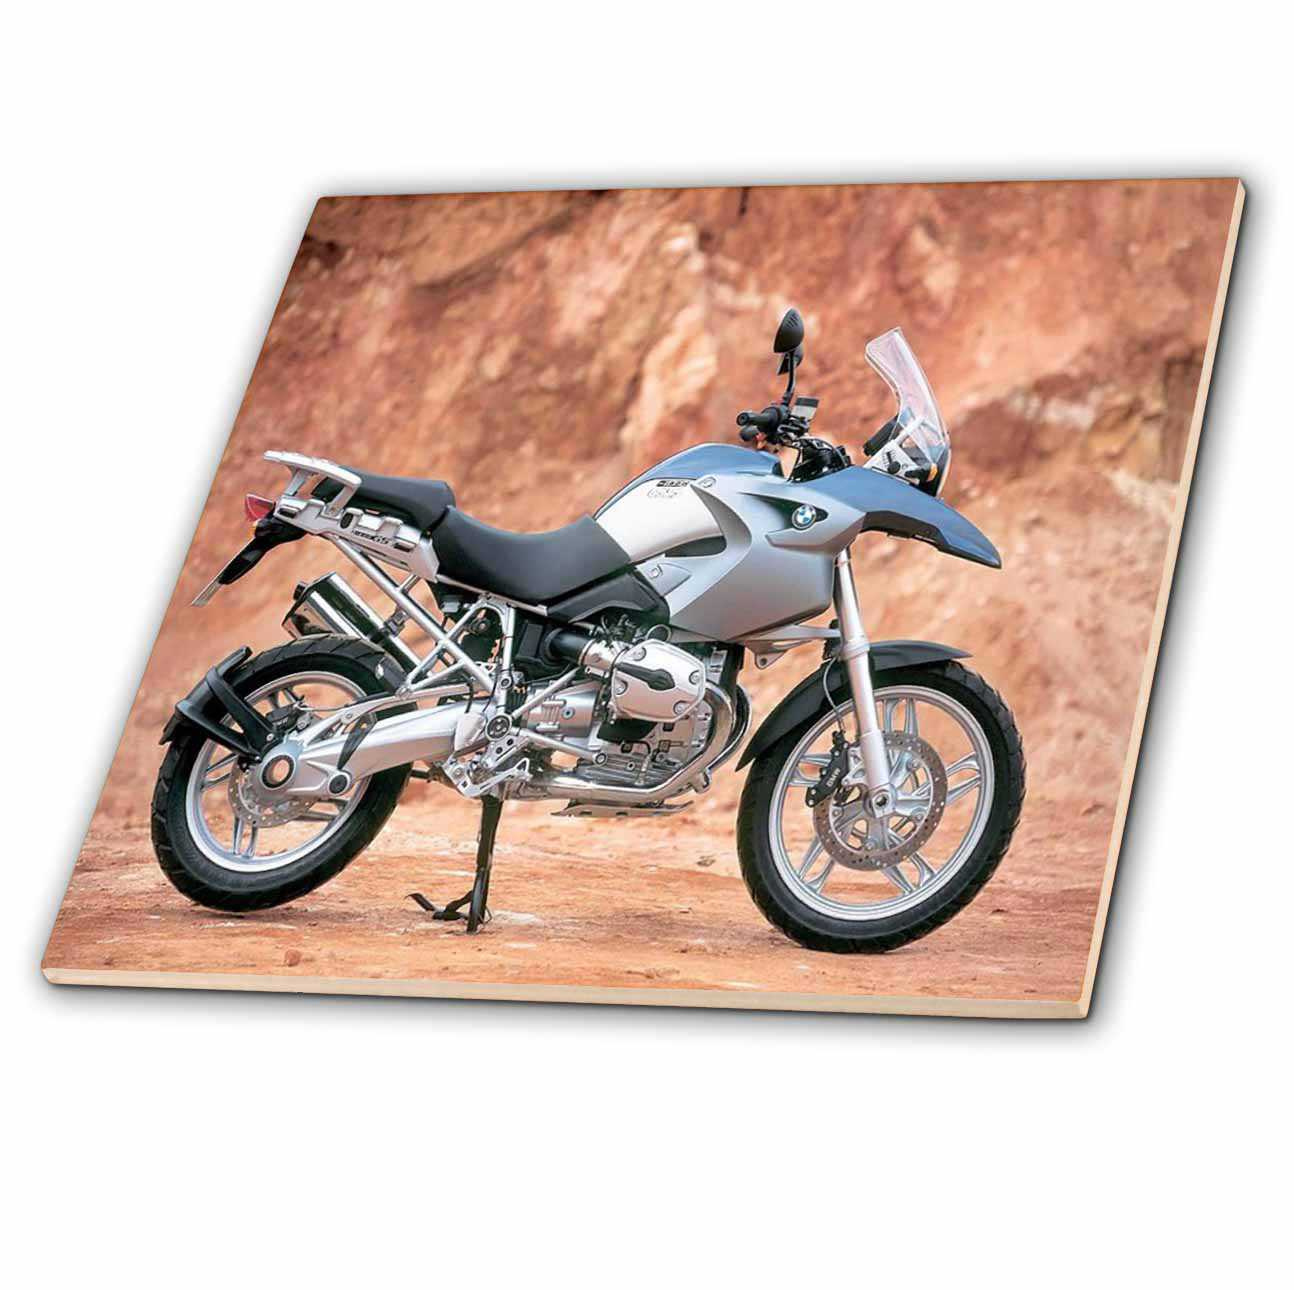 3dRose Motorcycle Standing - Ceramic Tile, 6-inch